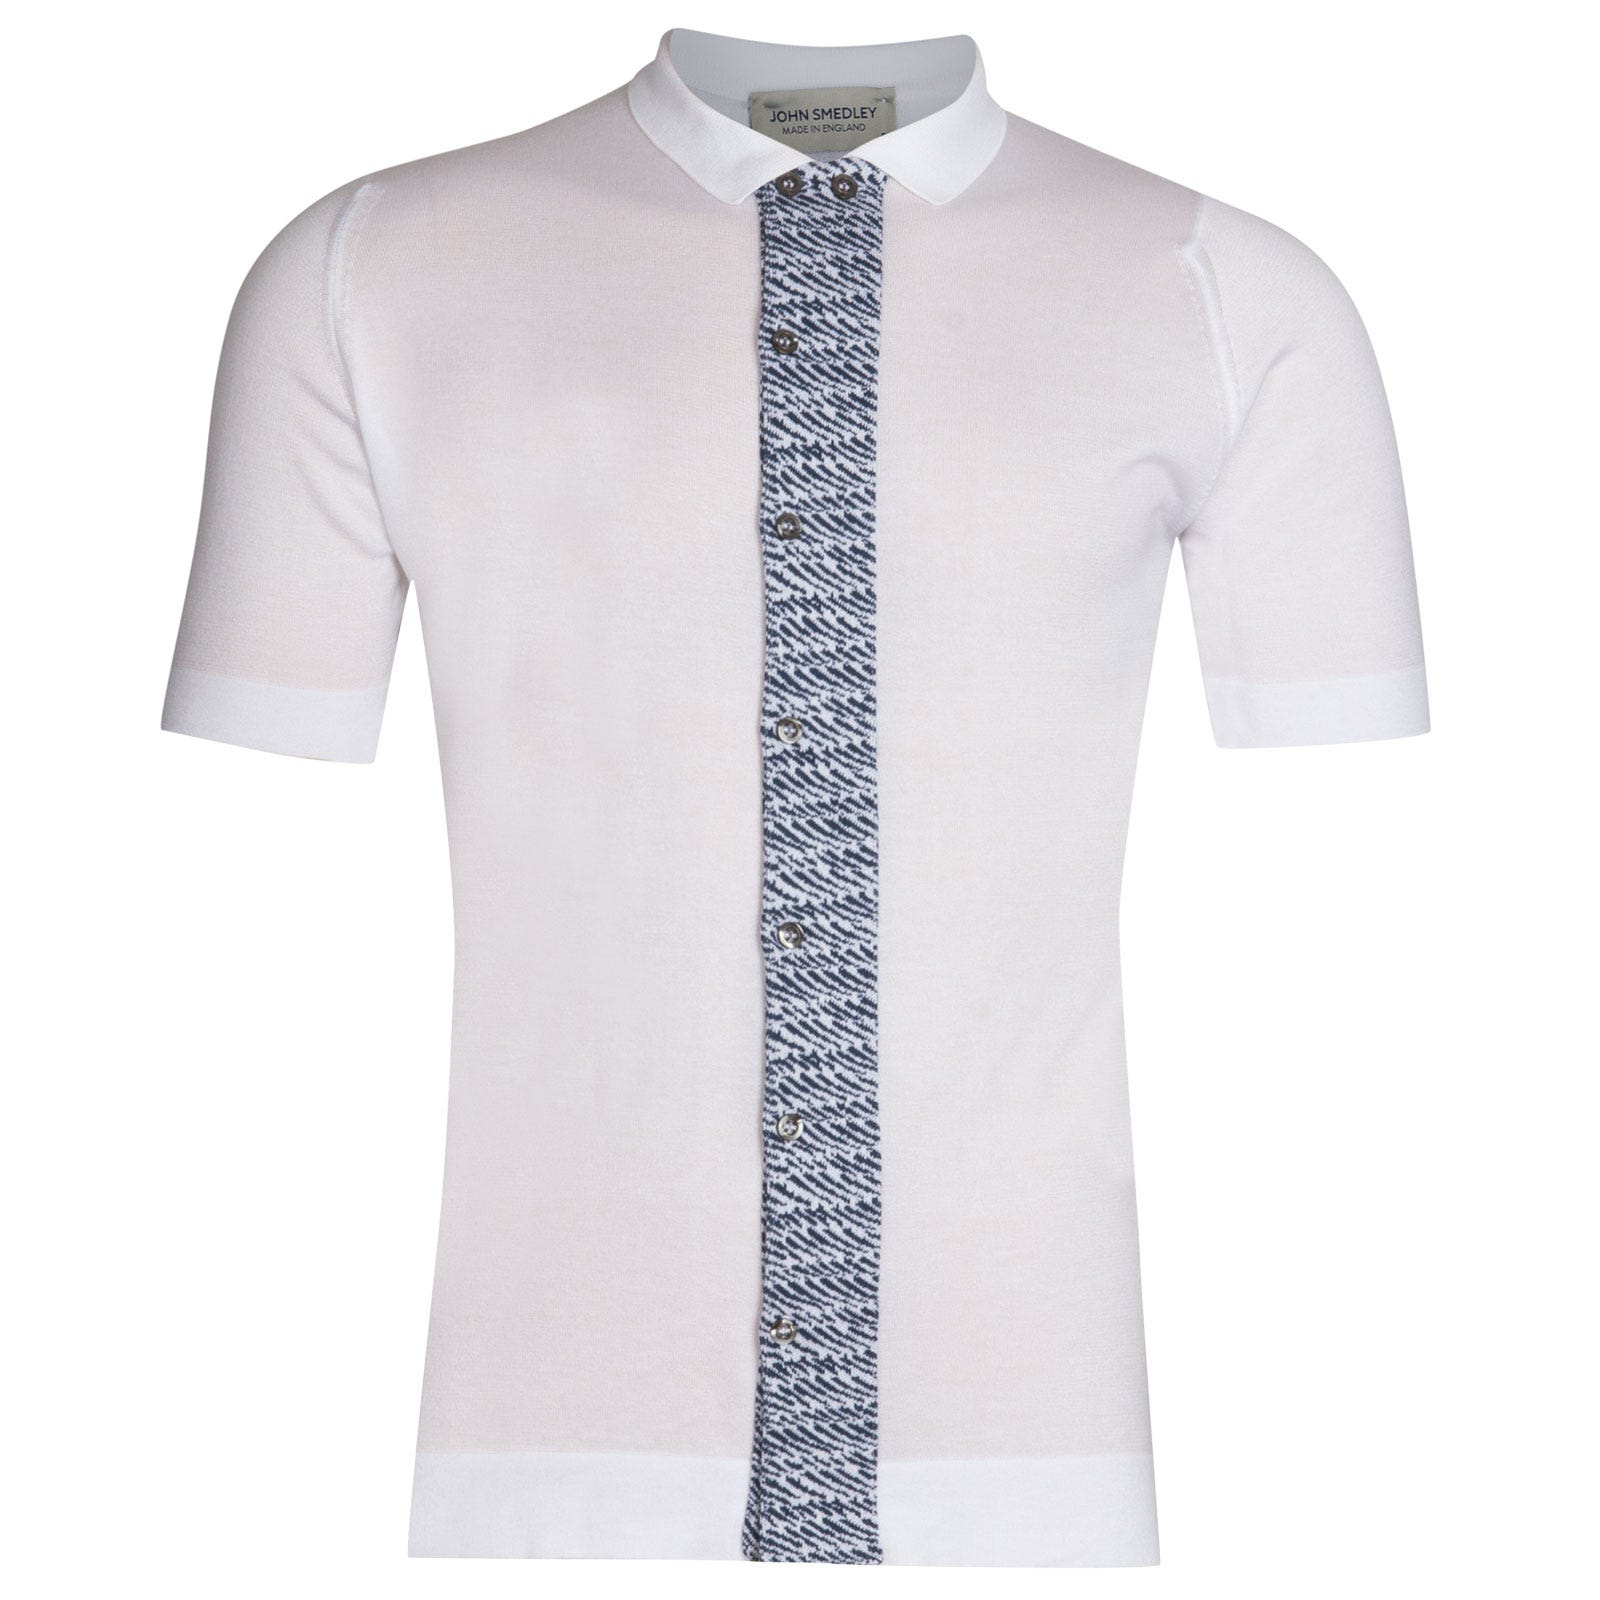 John Smedley Ackington Sea Island Cotton Polo Shirt in White-SML